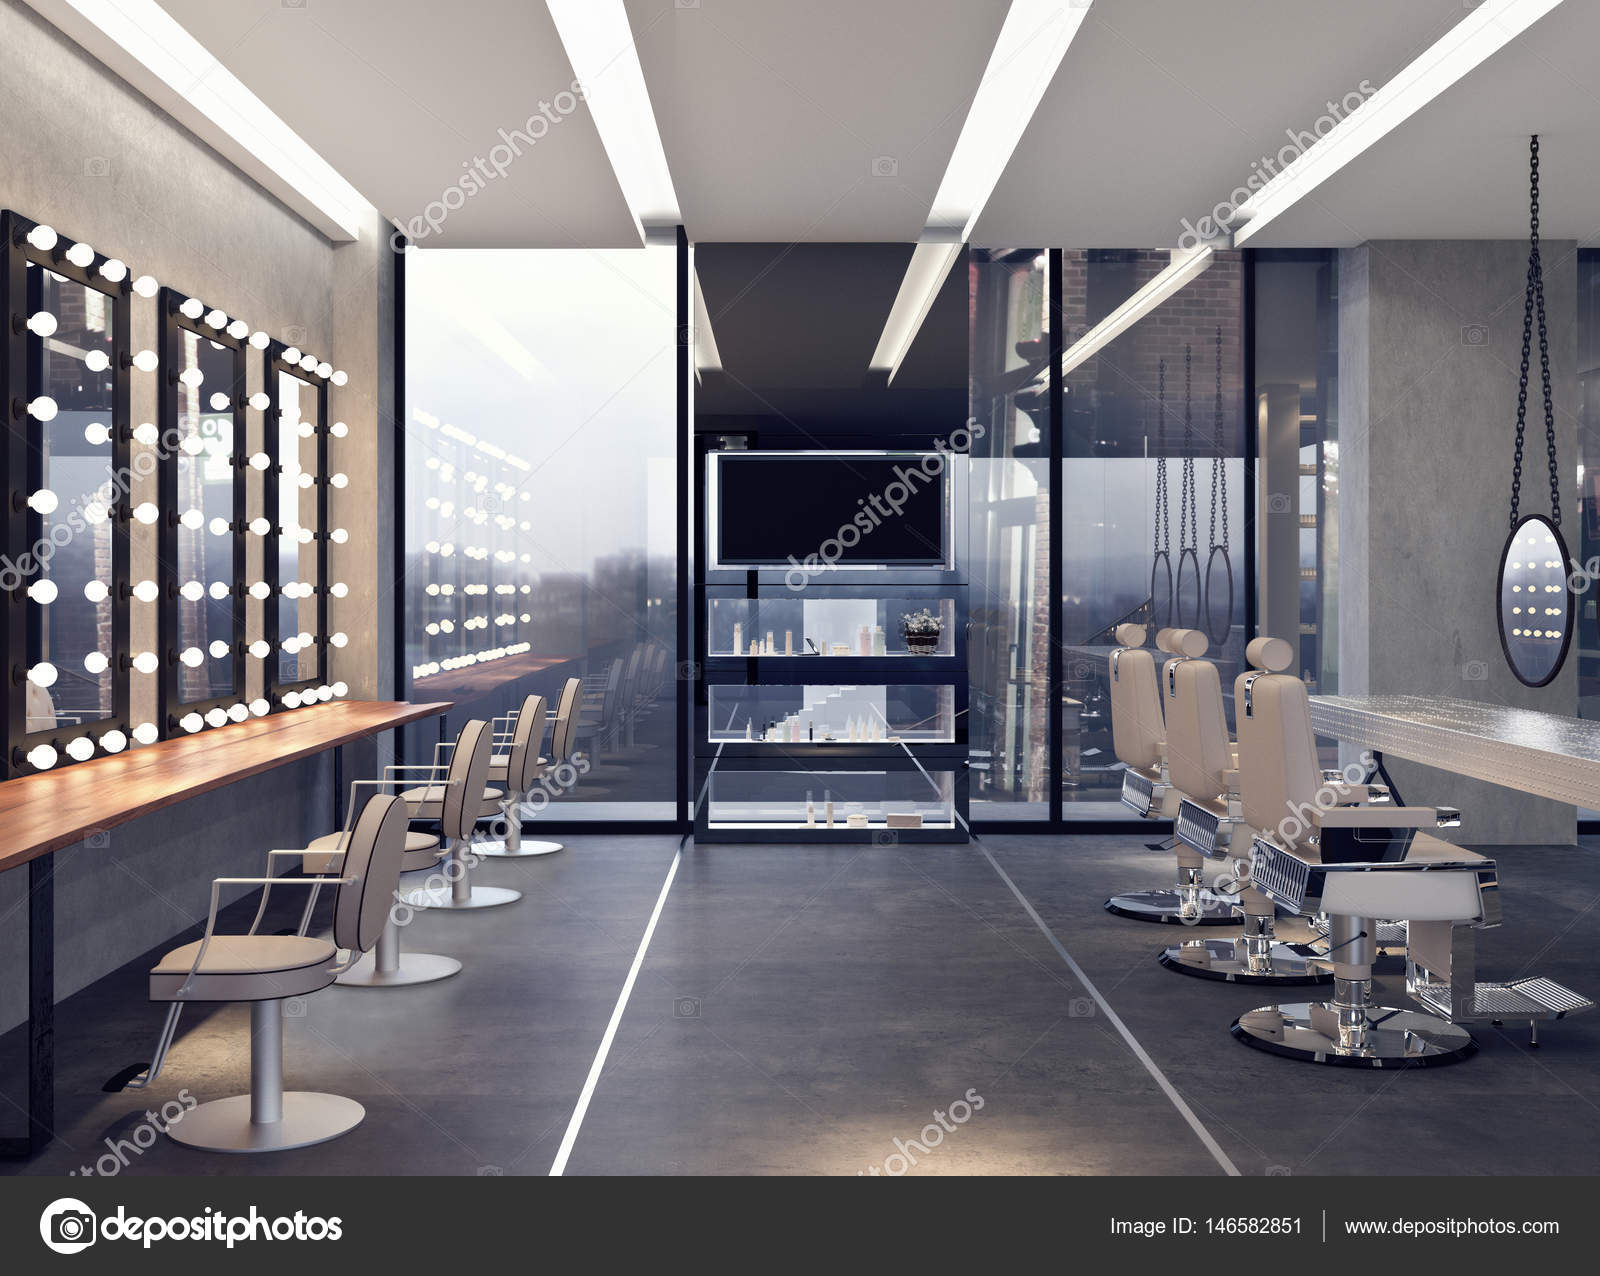 Modernes Interior Design des Salons — Stockfoto © hd3dsh #146582851